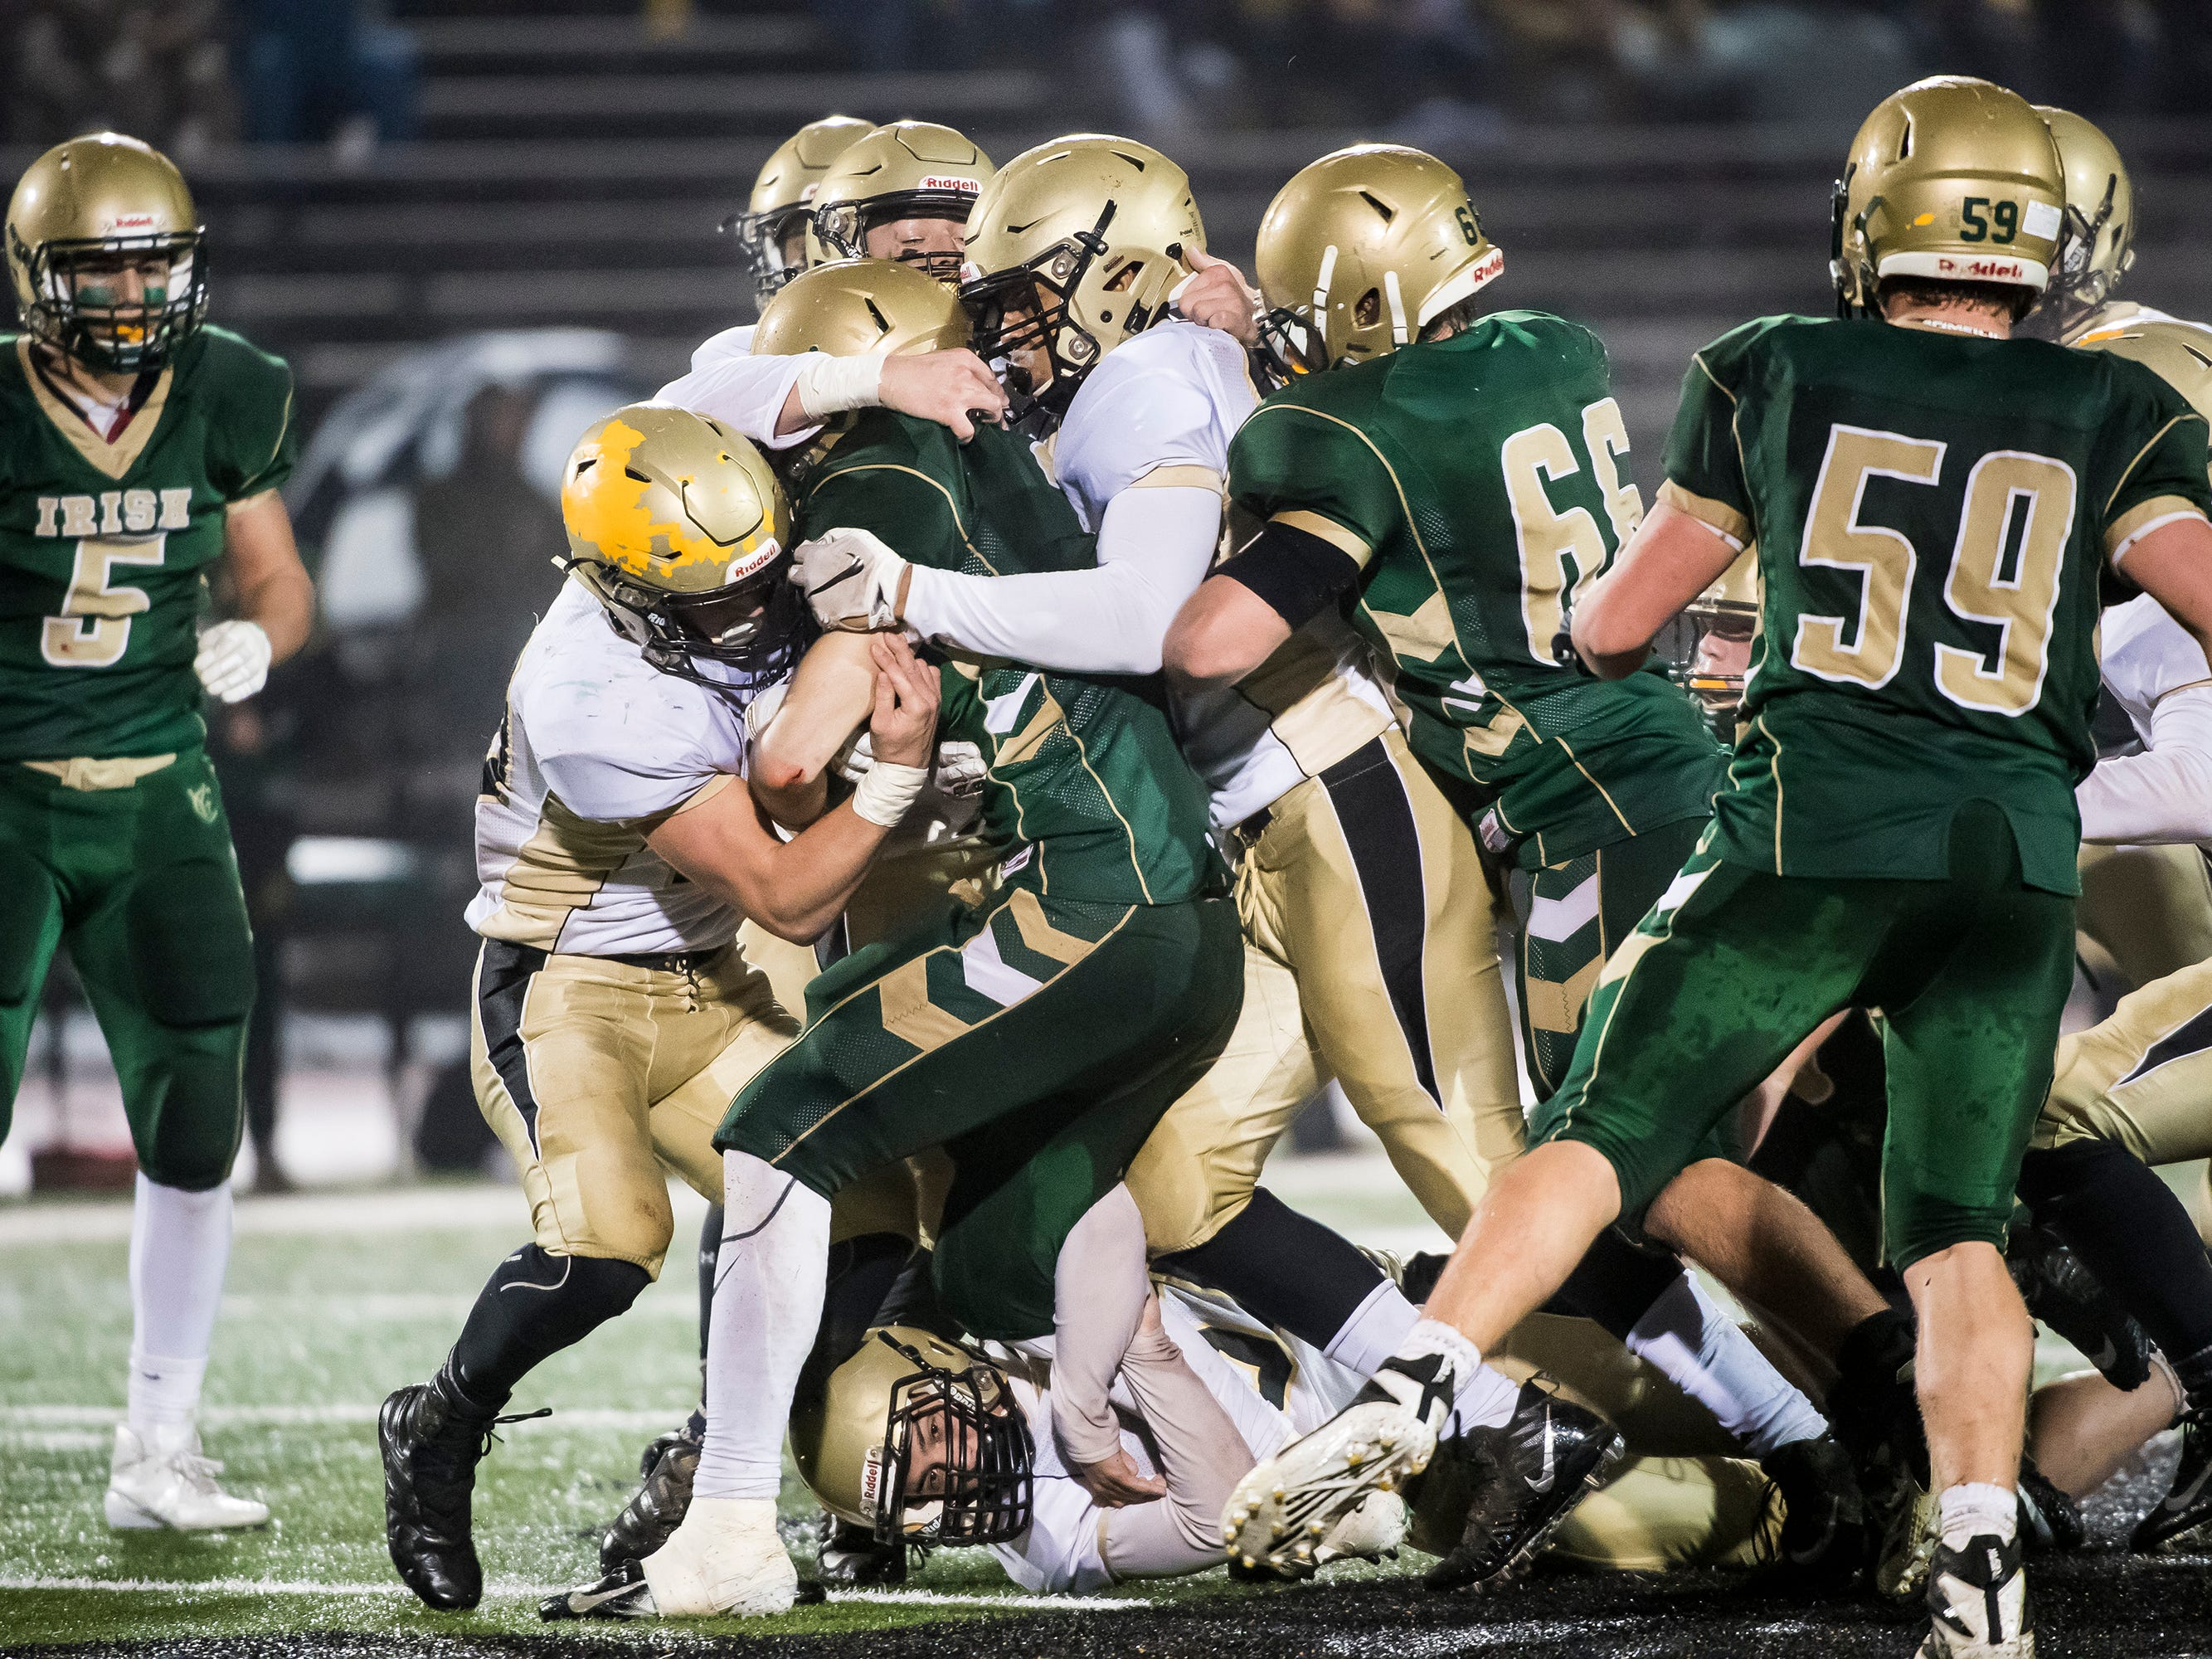 A host of Delone Catholic players tackle York Catholic's Cole Witman during the PIAA District 3 Class 2A championship game at South Western High School on Friday, November 9, 2018. The Squires fell 28-21 in overtime.